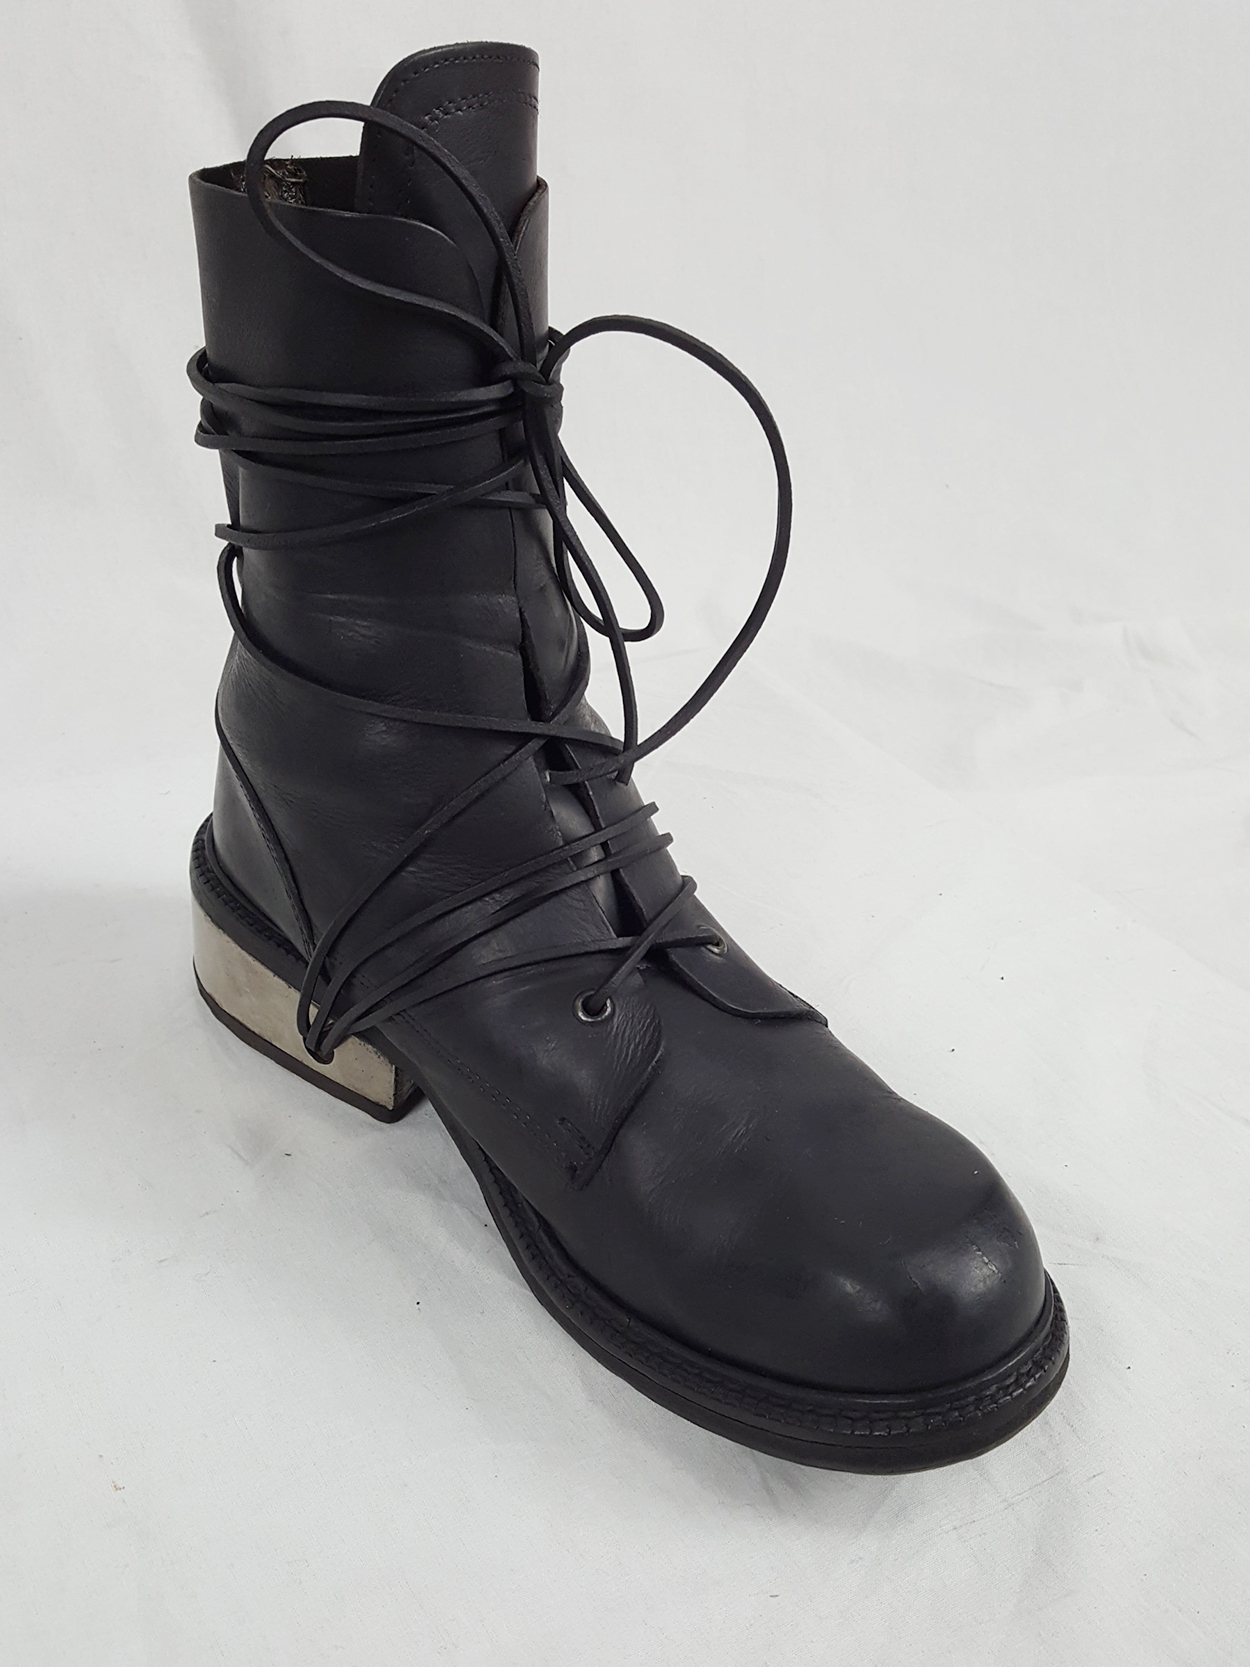 vaniitas vintage Dirk Bikkembergs black tall boots with laces through the metal heel 1990S 90S 175129